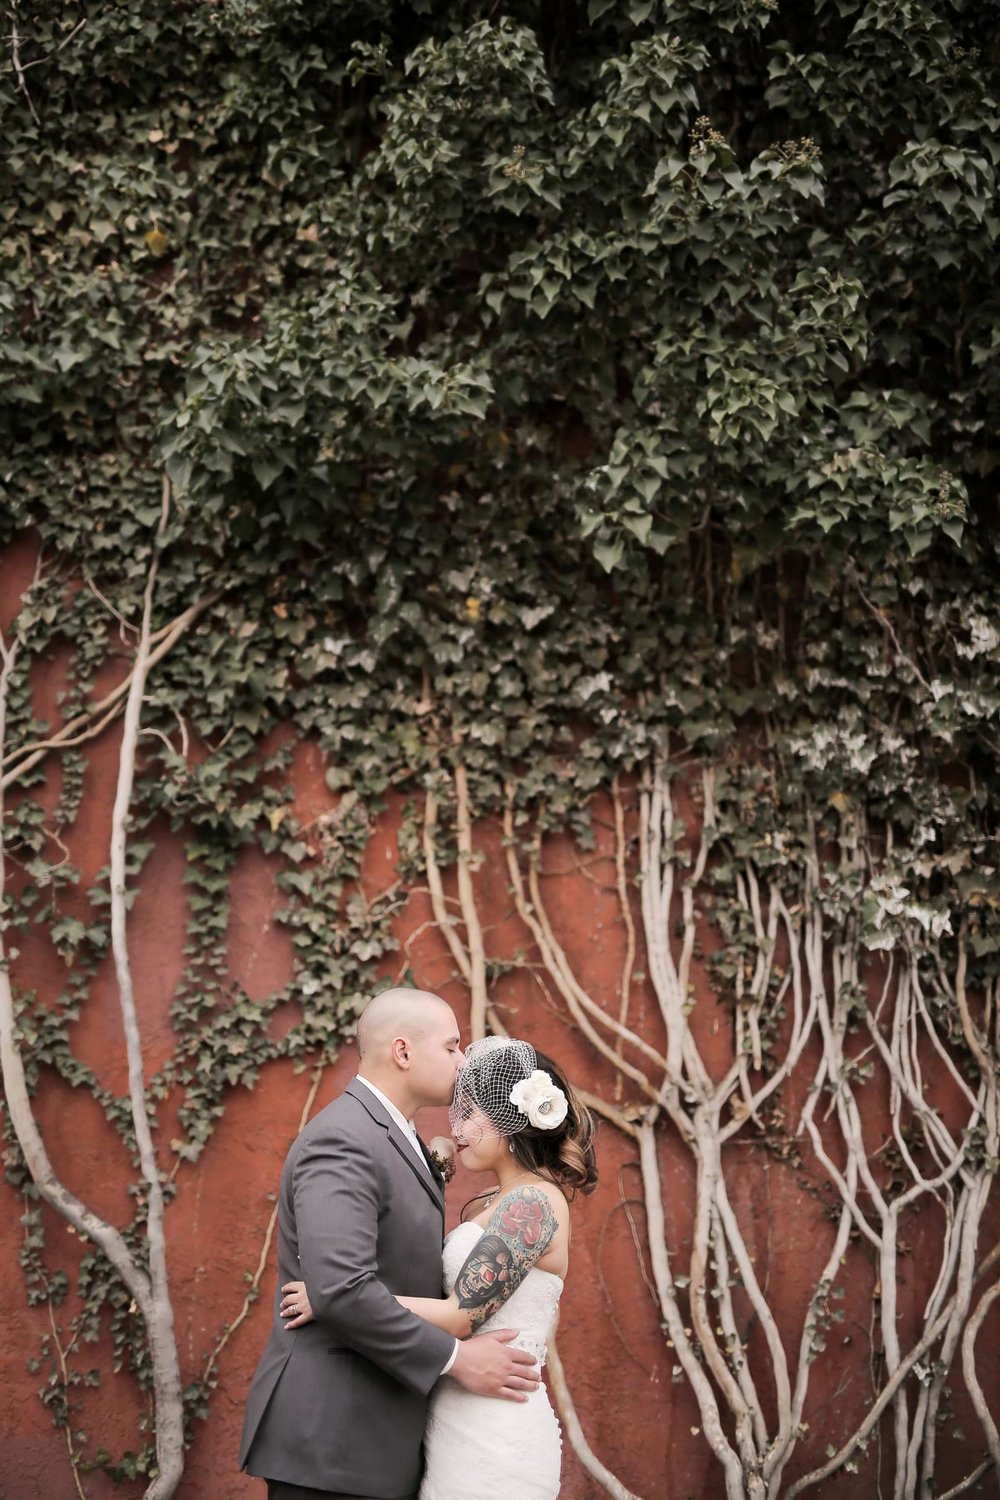 bride-and-groom-kissing-photos-utah-weddings-pepper_nix_photography-20.jpg